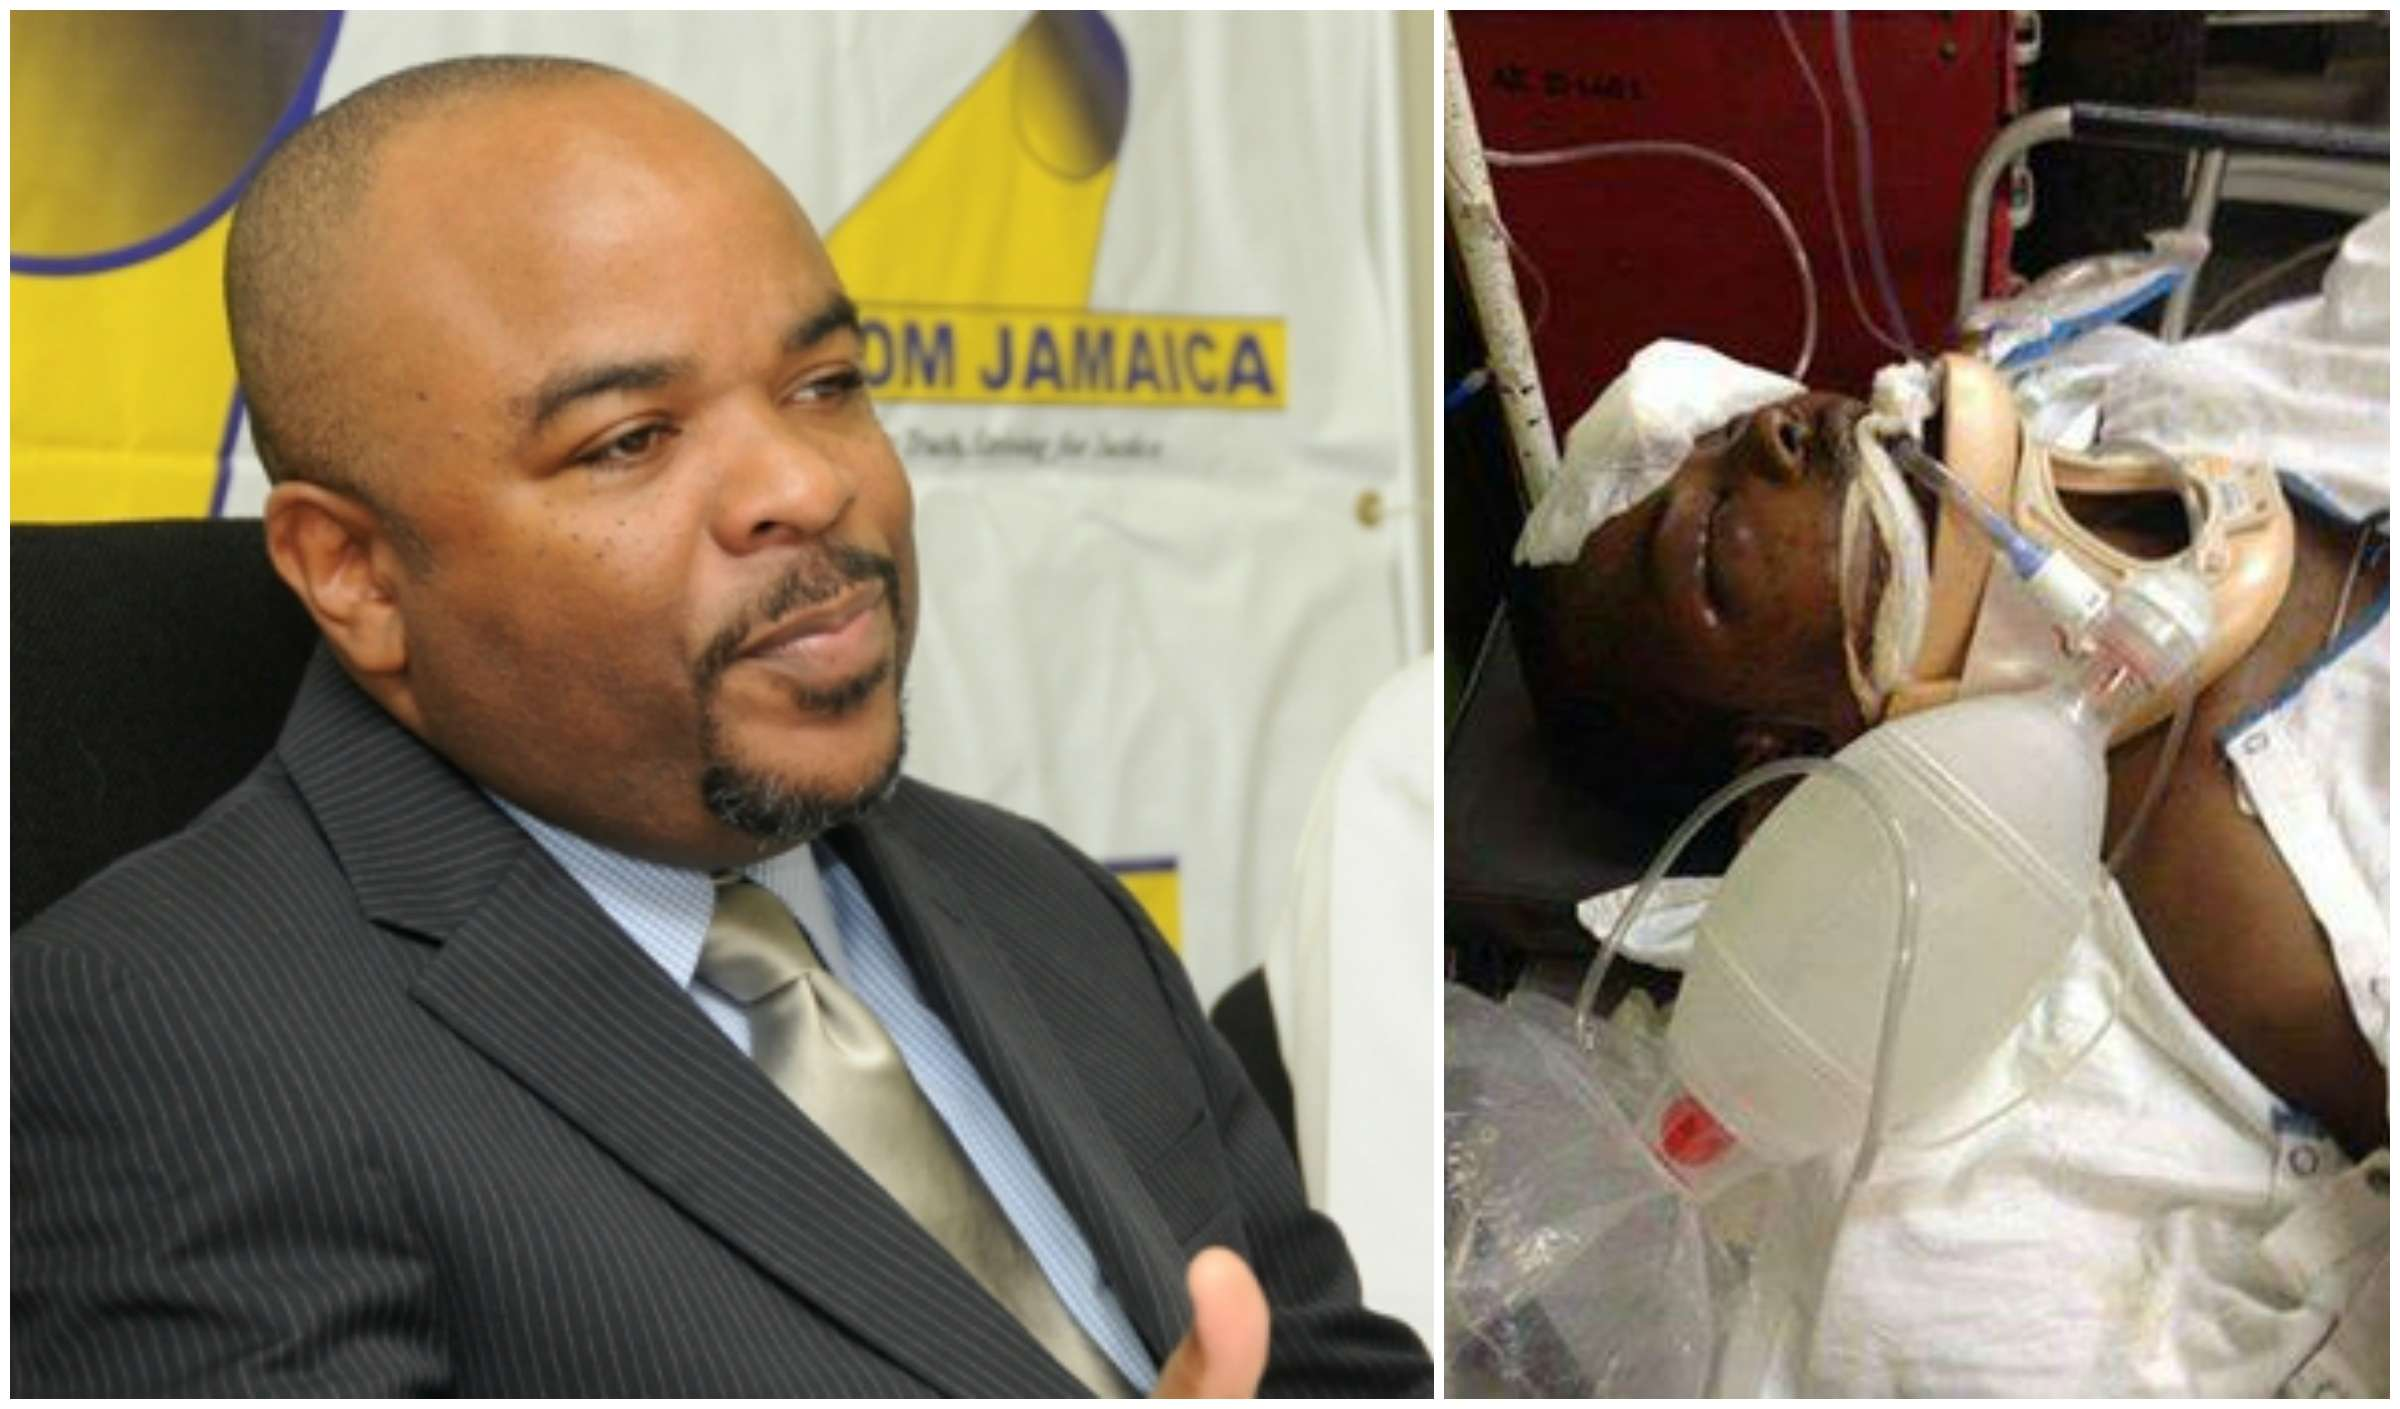 Jamaica Has Failed Miserably to Protect Citizen's Rights: INDECOM